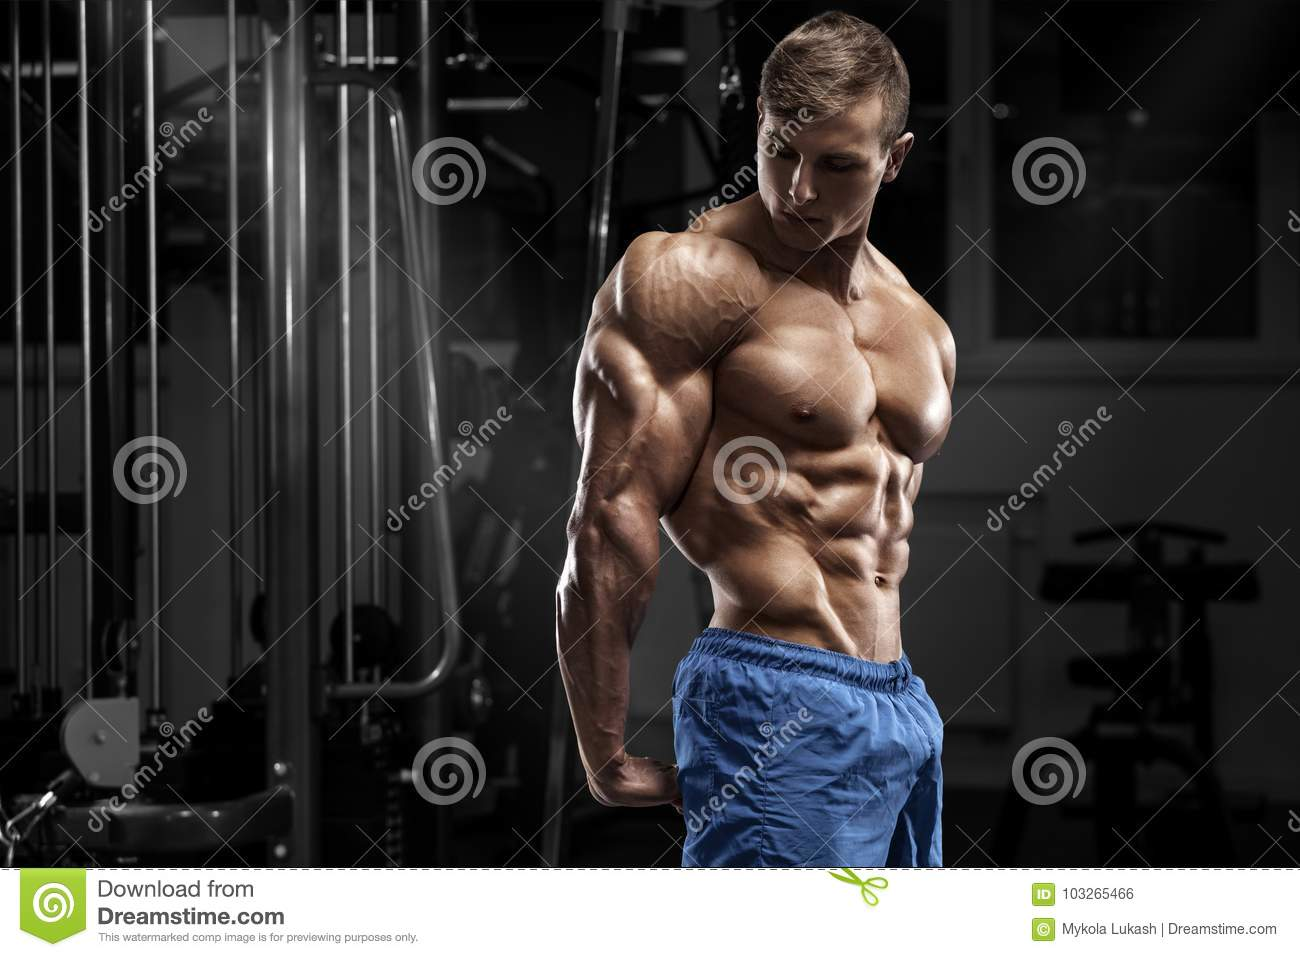 muscular man posing in gym, shaped abdominal, showing triceps. Strong male naked torso abs, working out